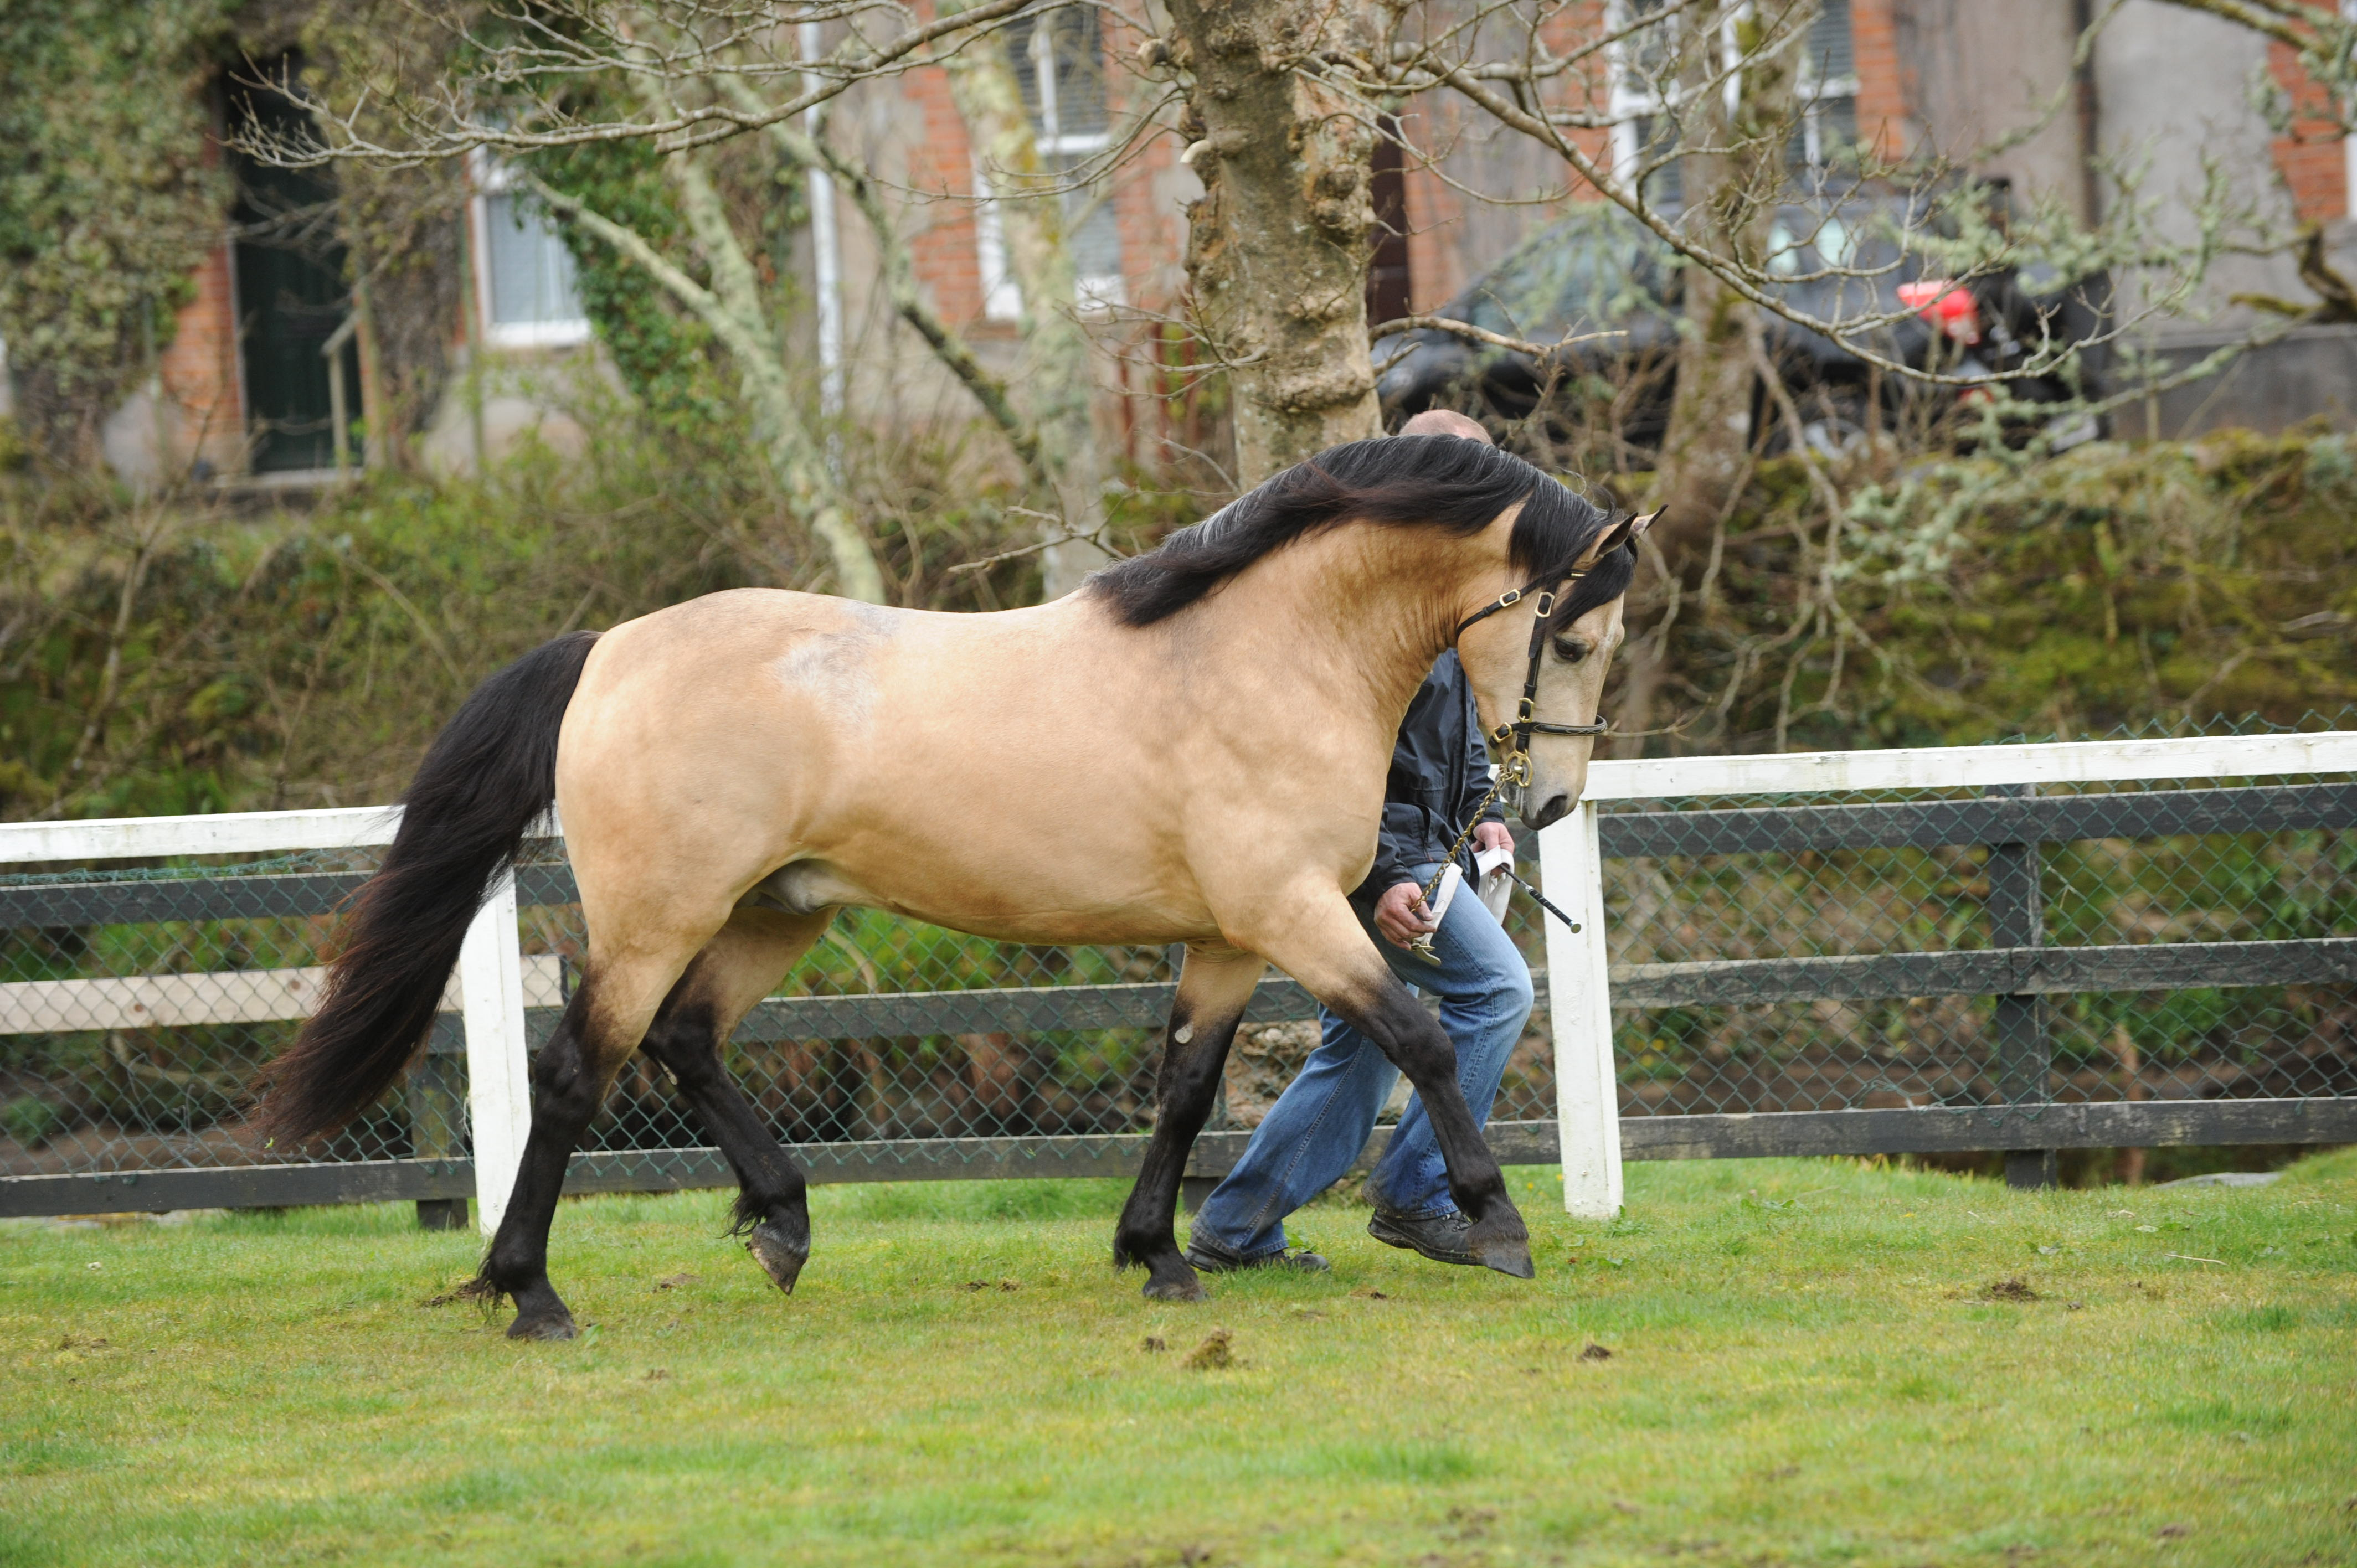 National Pony Stallion Parade to be held in Duffy's Equestrian Centre Claregalway